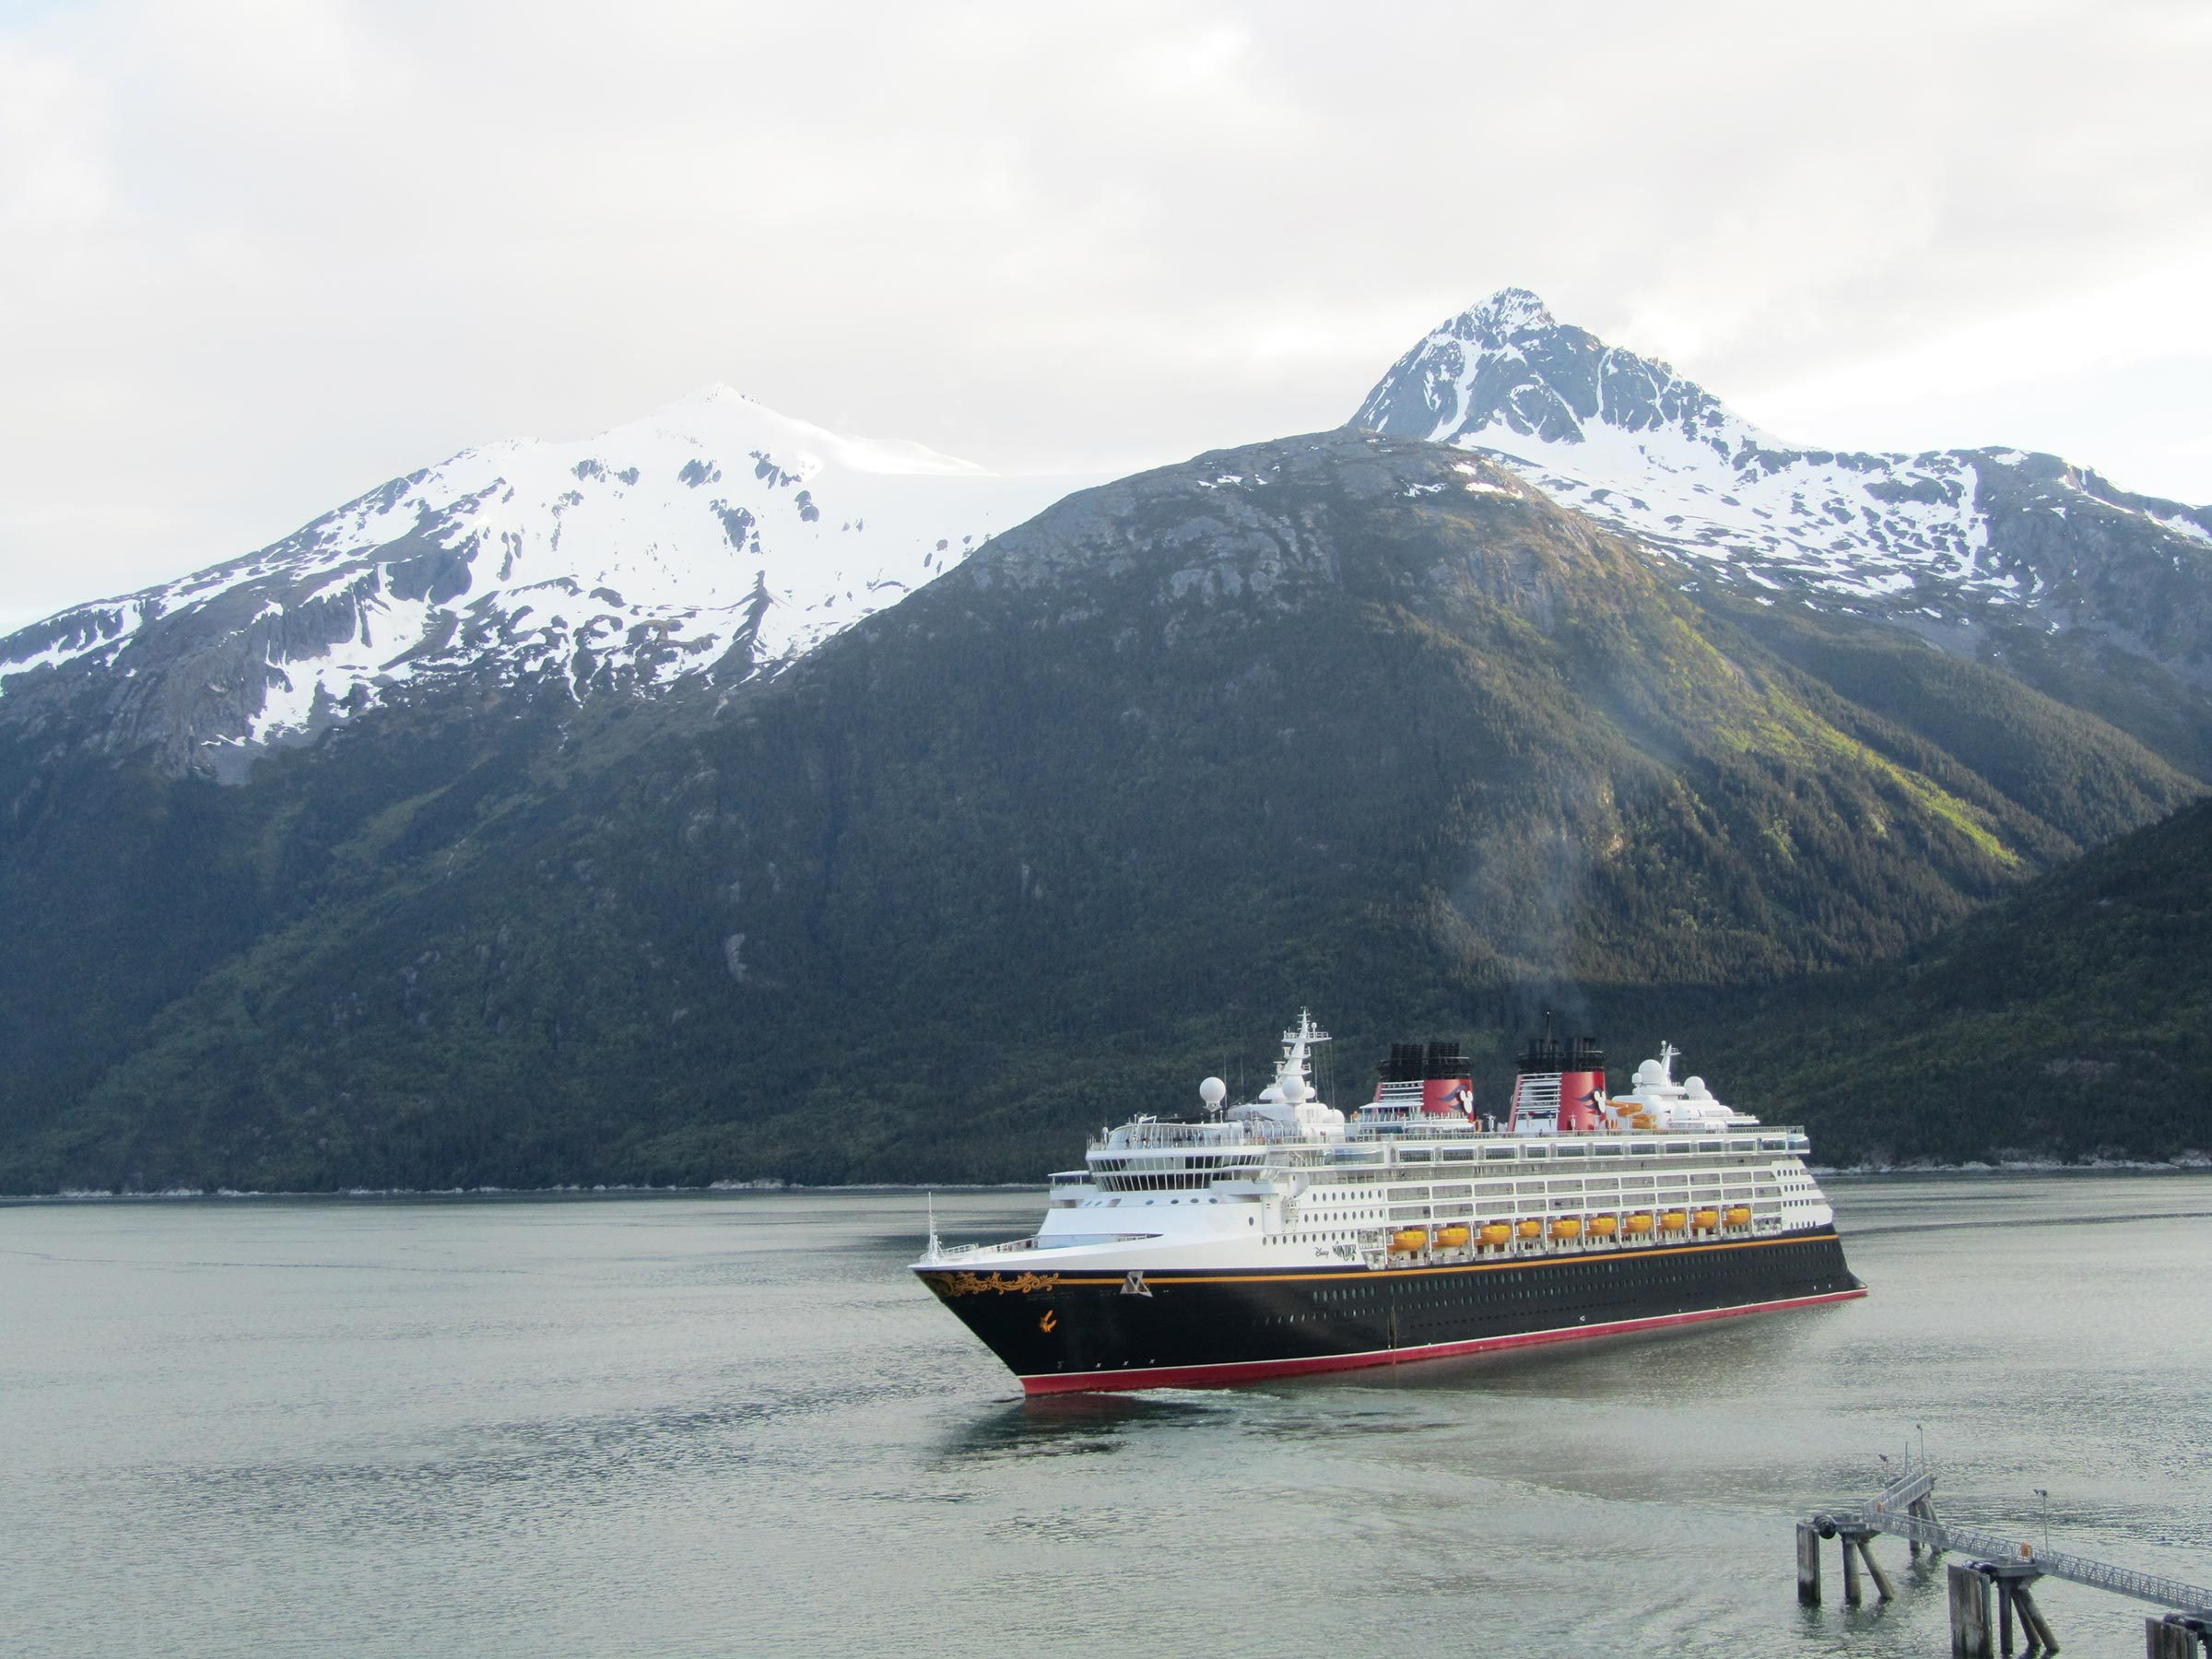 Juneau, Alaska, USA on 05.06.2018: Disney Wonder in front of the fantastic Alaskan scenery